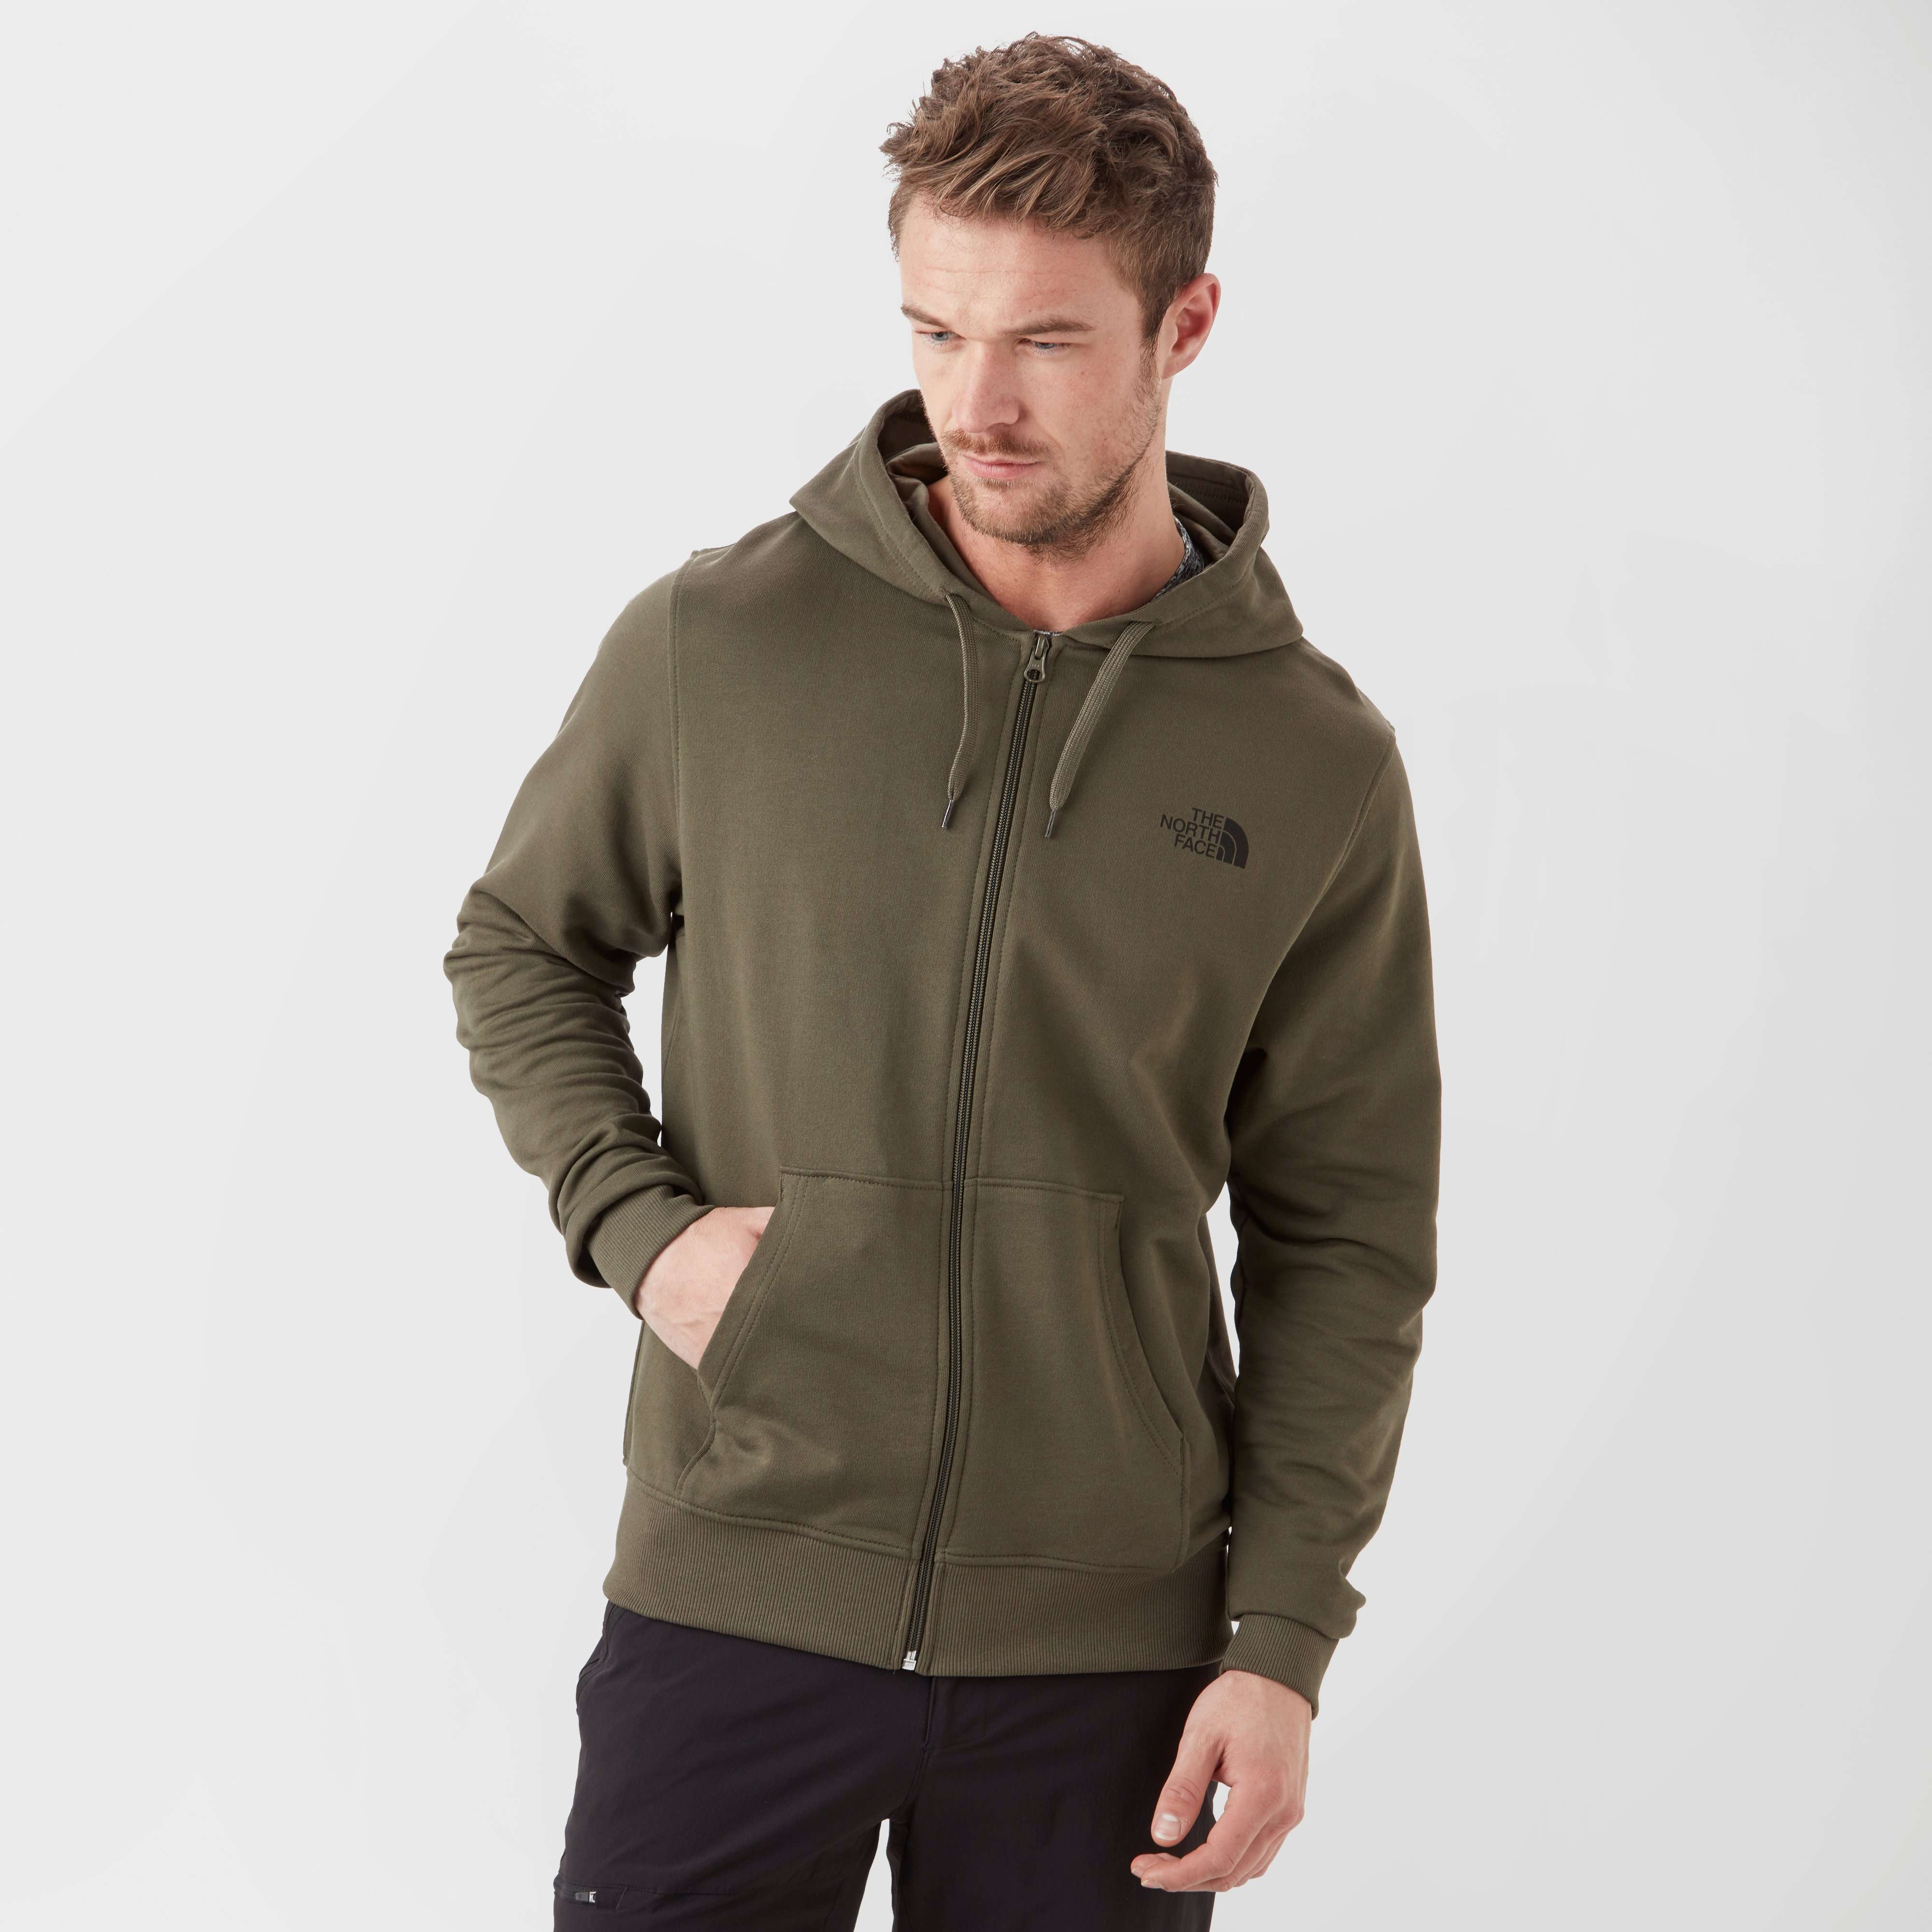 THE NORTH FACE Men's Open Gate Full-Zip Hoodie